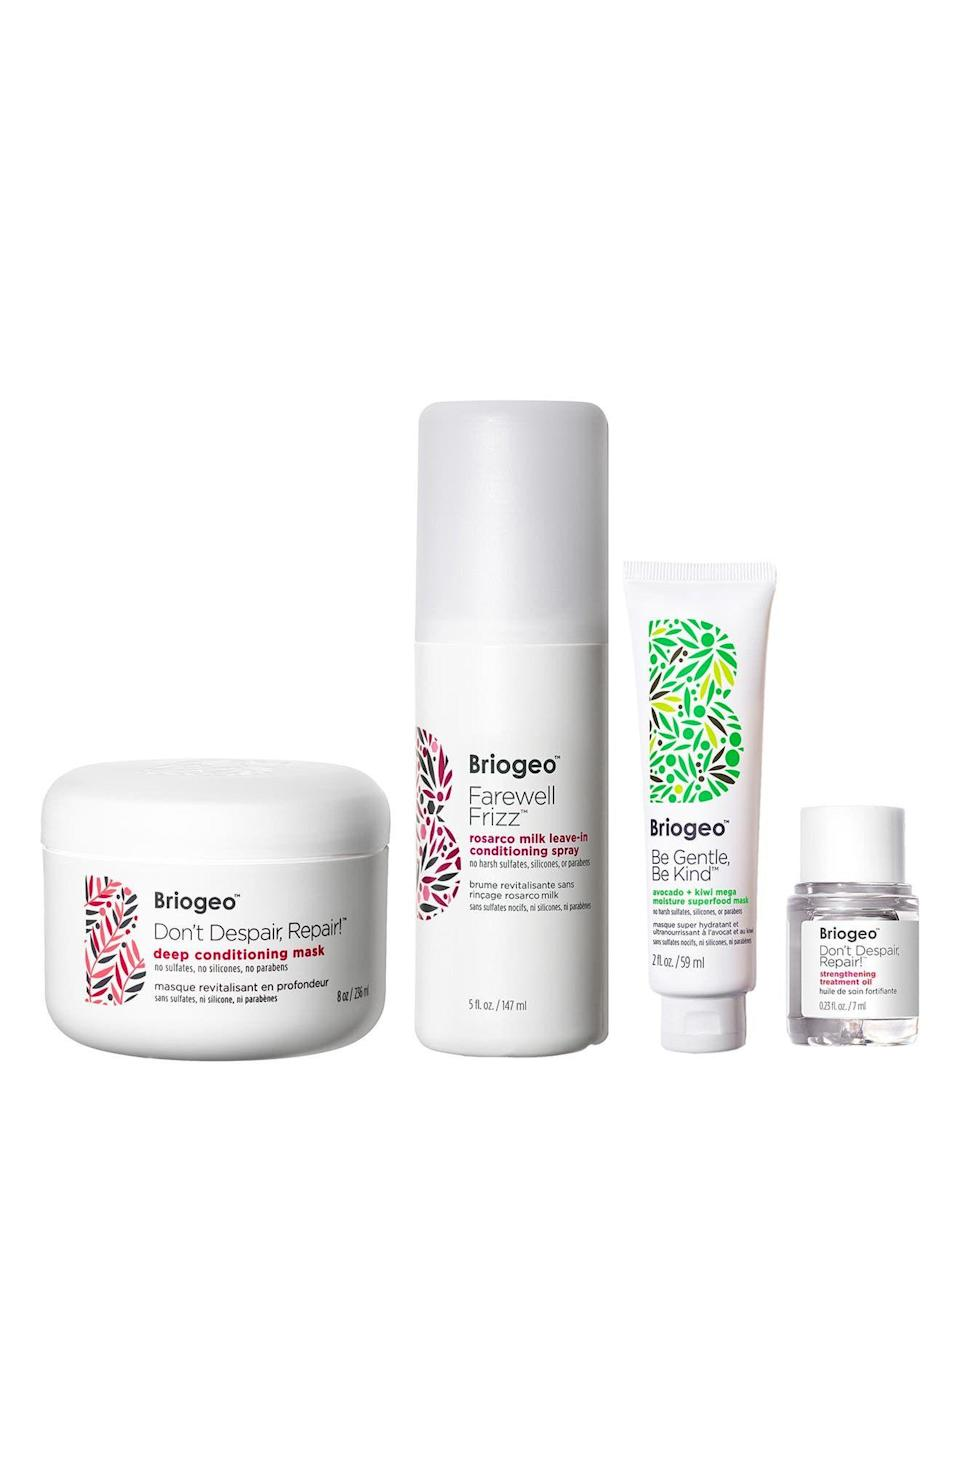 """<p><strong>Briogeo</strong></p><p>nordstrom.com</p><p><strong>$49.00</strong></p><p><a href=""""https://go.redirectingat.com?id=74968X1596630&url=https%3A%2F%2Fwww.nordstrom.com%2Fs%2Fbriogeo-healthy-hair-wonders-set-75-value%2F5912861&sref=https%3A%2F%2Fwww.elle.com%2Fbeauty%2Fg36944650%2Fnorstrom-anniversary-beauty-sale-2021%2F"""" rel=""""nofollow noopener"""" target=""""_blank"""" data-ylk=""""slk:Shop Now"""" class=""""link rapid-noclick-resp"""">Shop Now</a></p><p>For perfect spirals, this set of hair products will hydrate, add bounce and shine, and make you look like a shampoo model.</p>"""